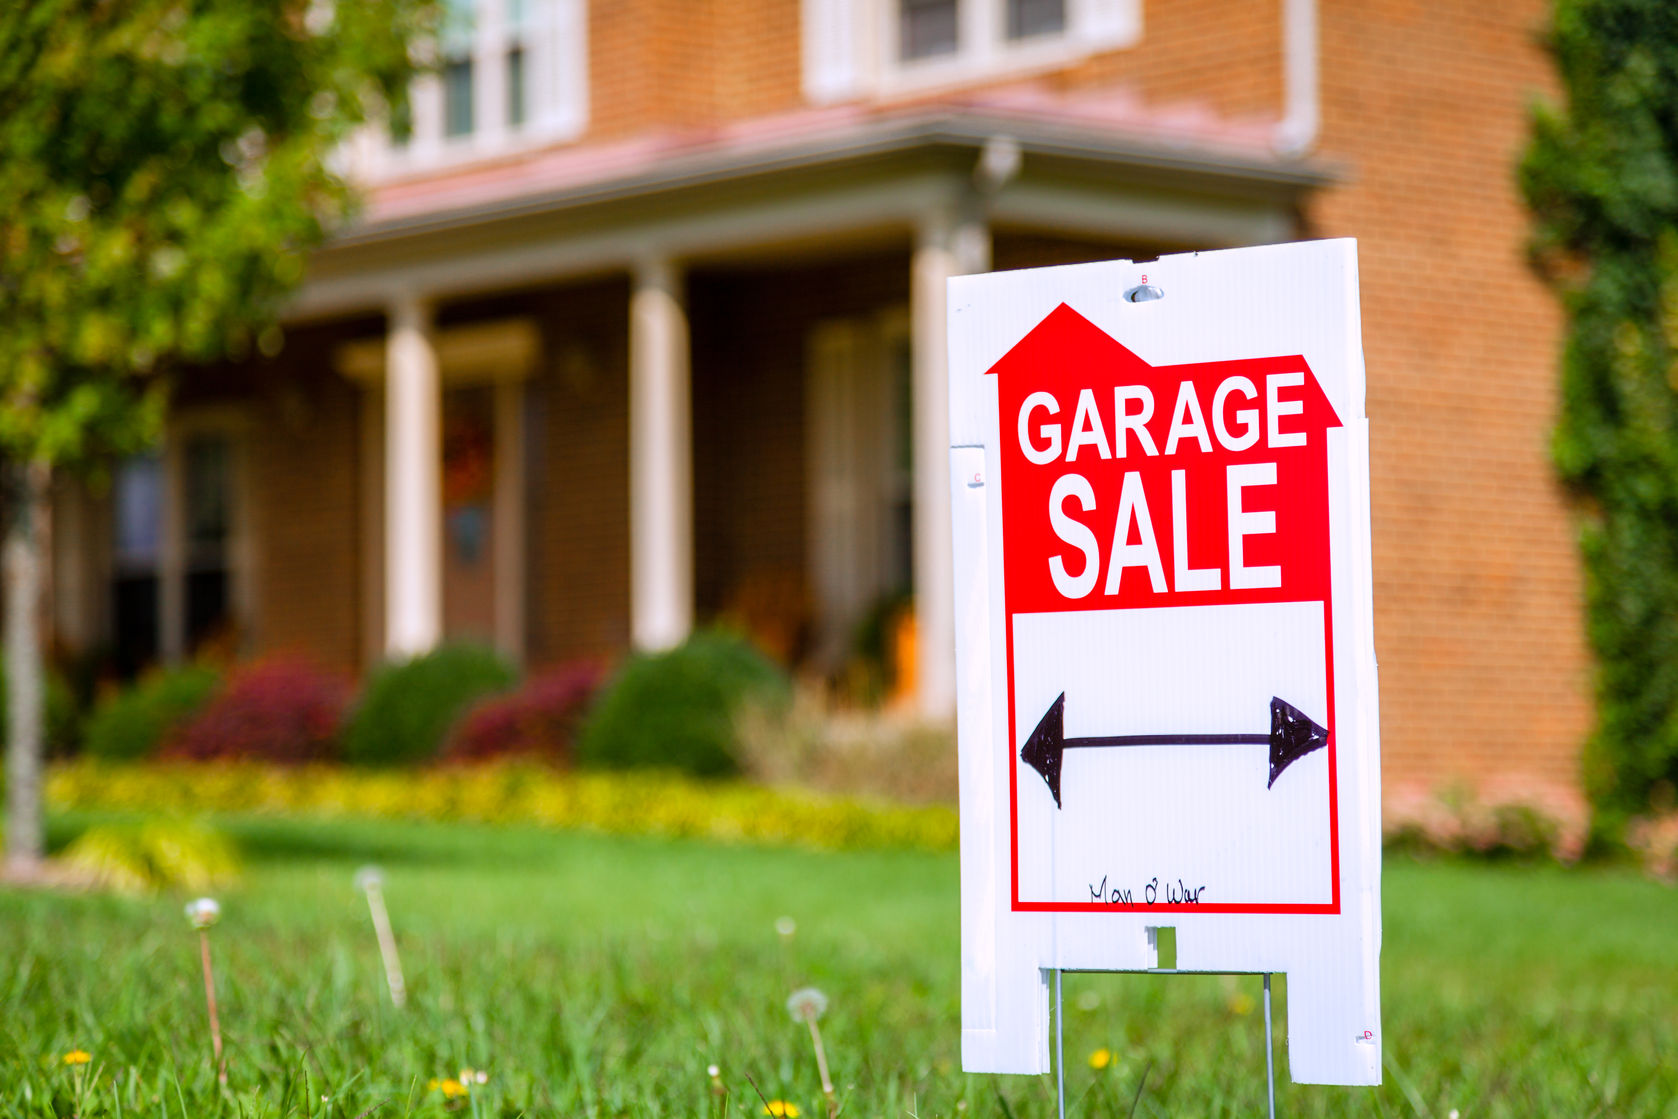 Find local garage sales faster with Facebooks update to